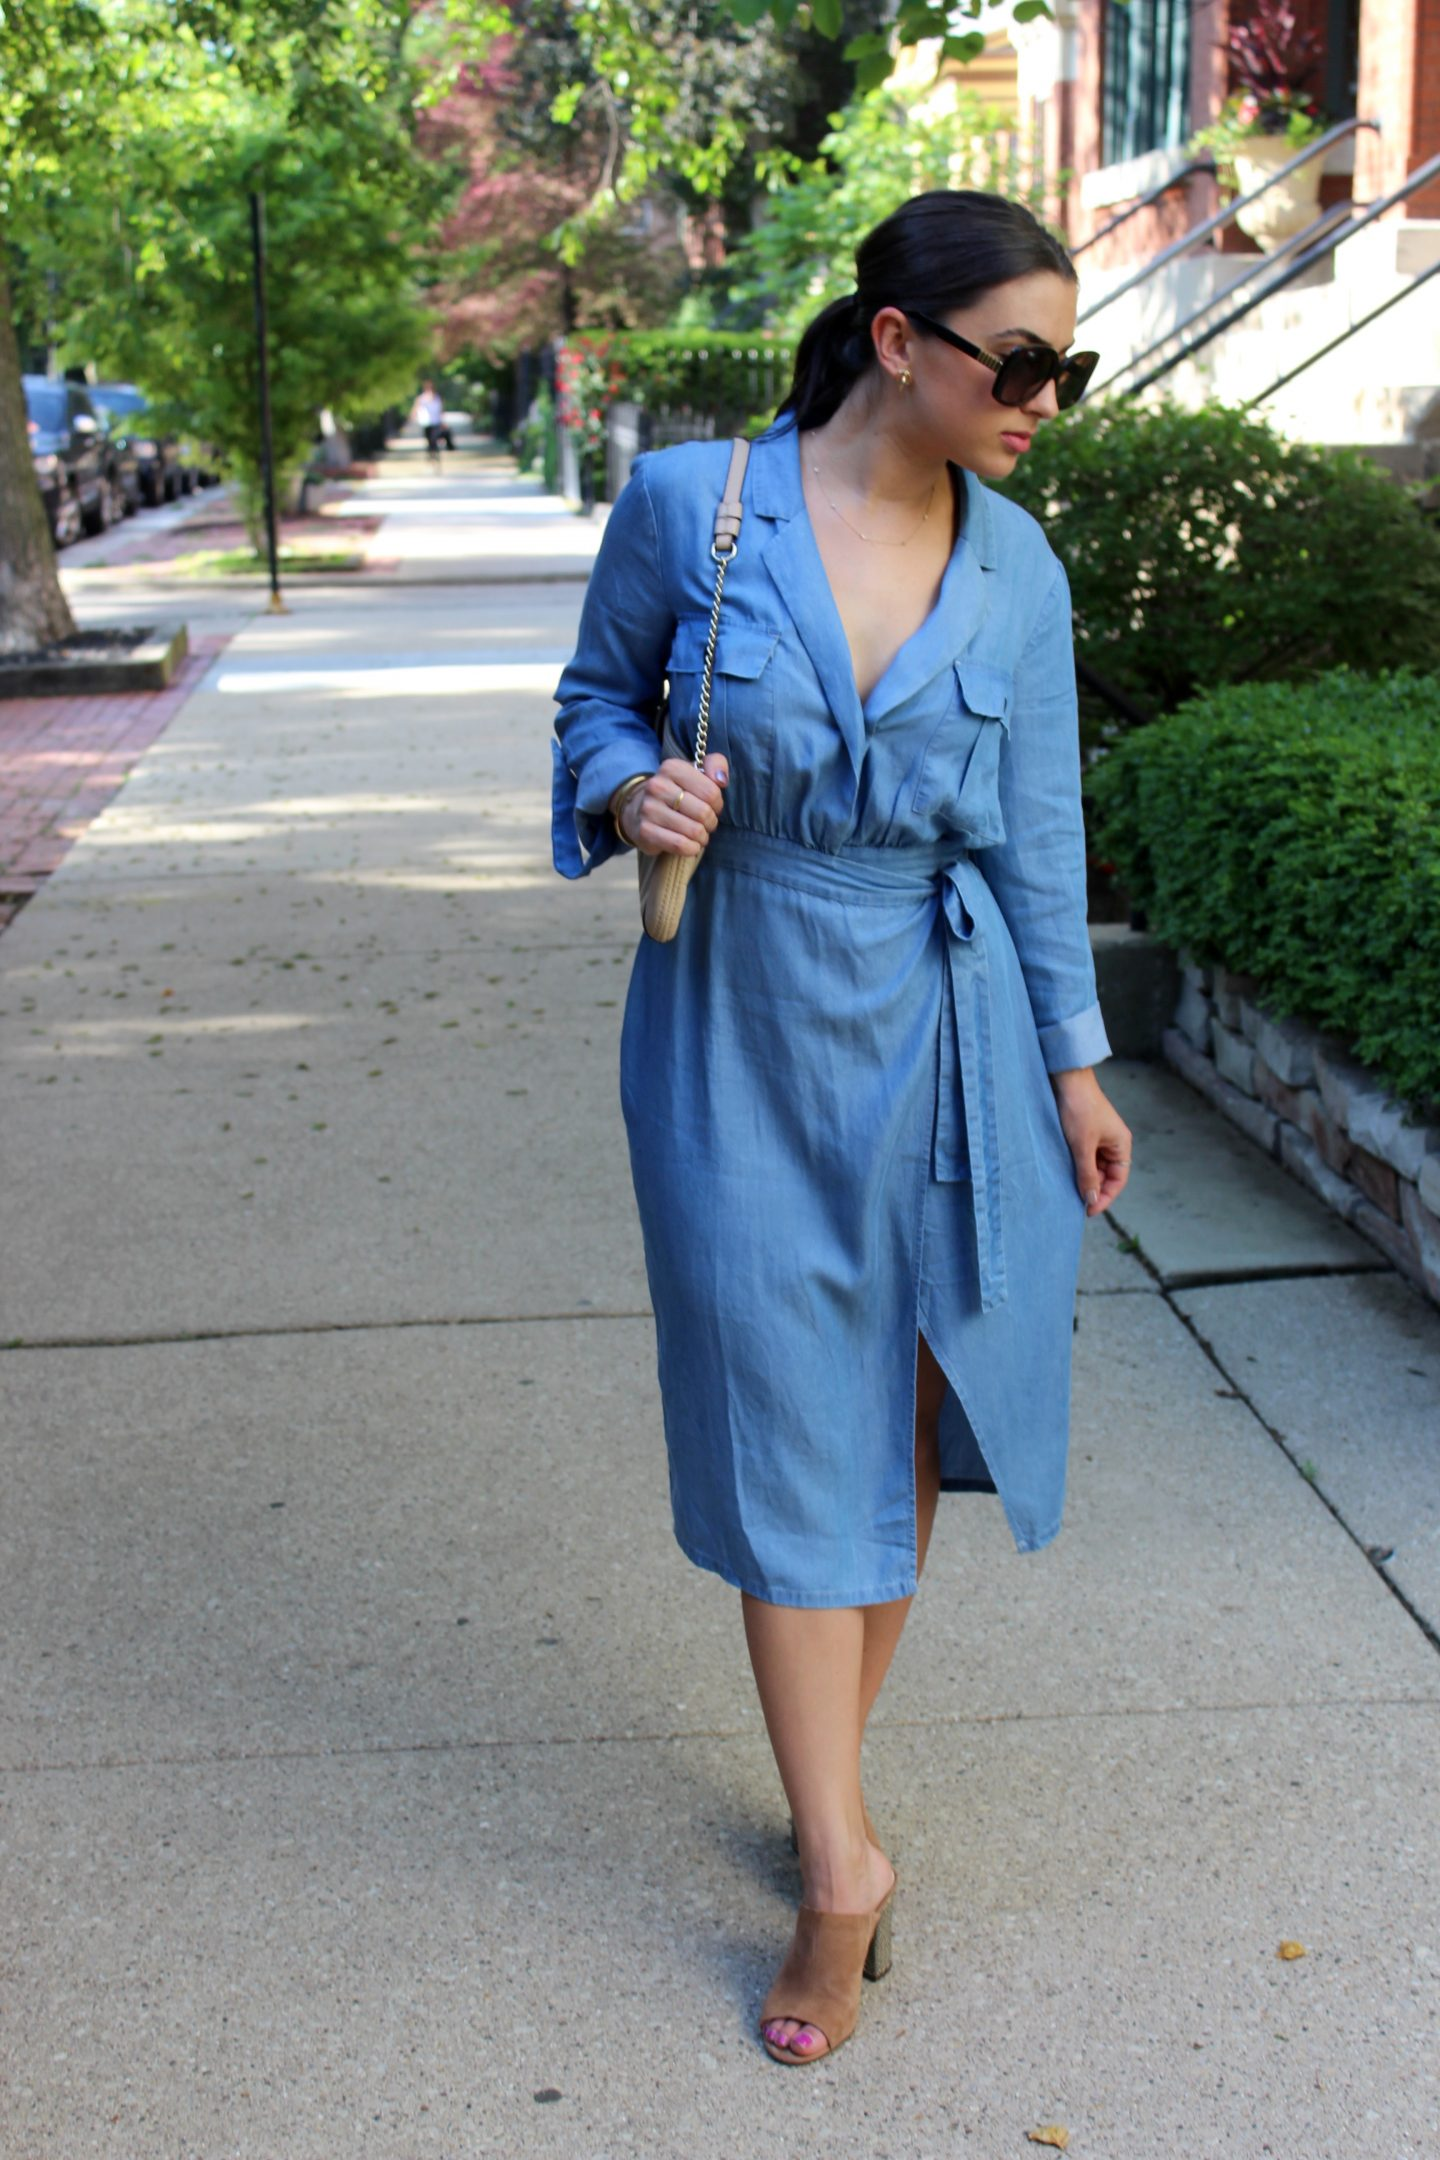 The Bellezza Corner wrap dress walking on the sidewalk